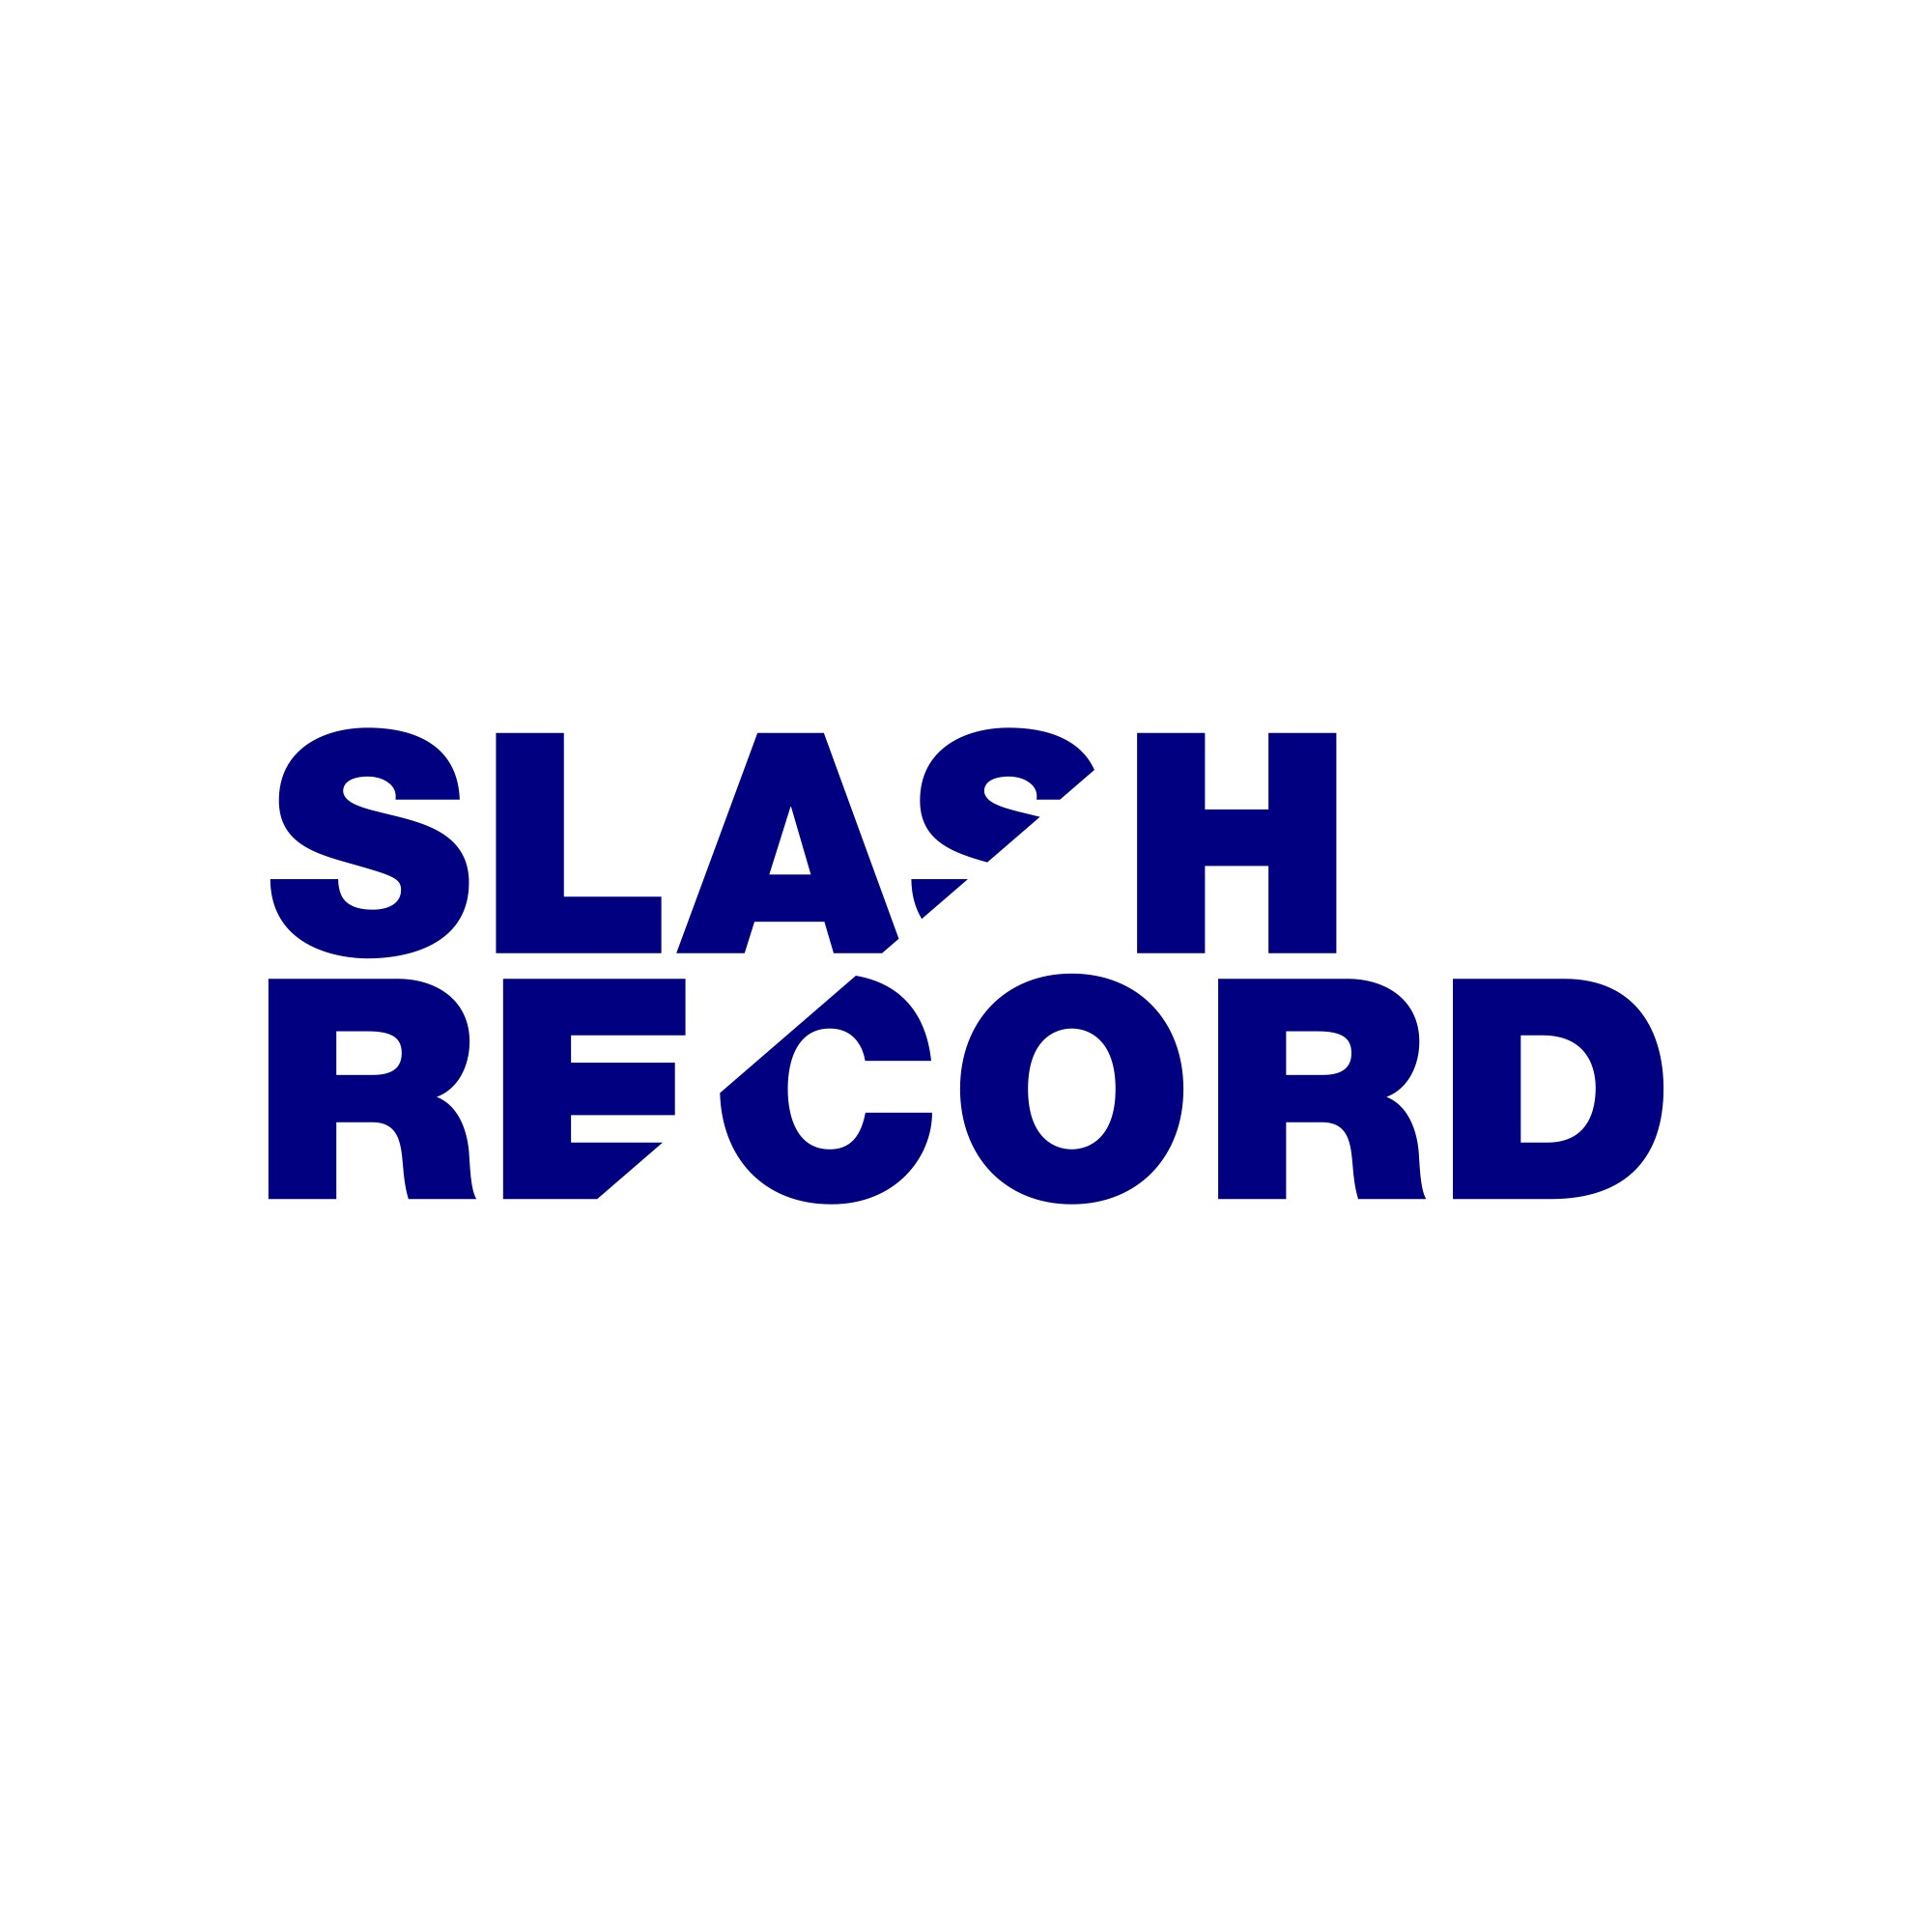 SLASH RECORD